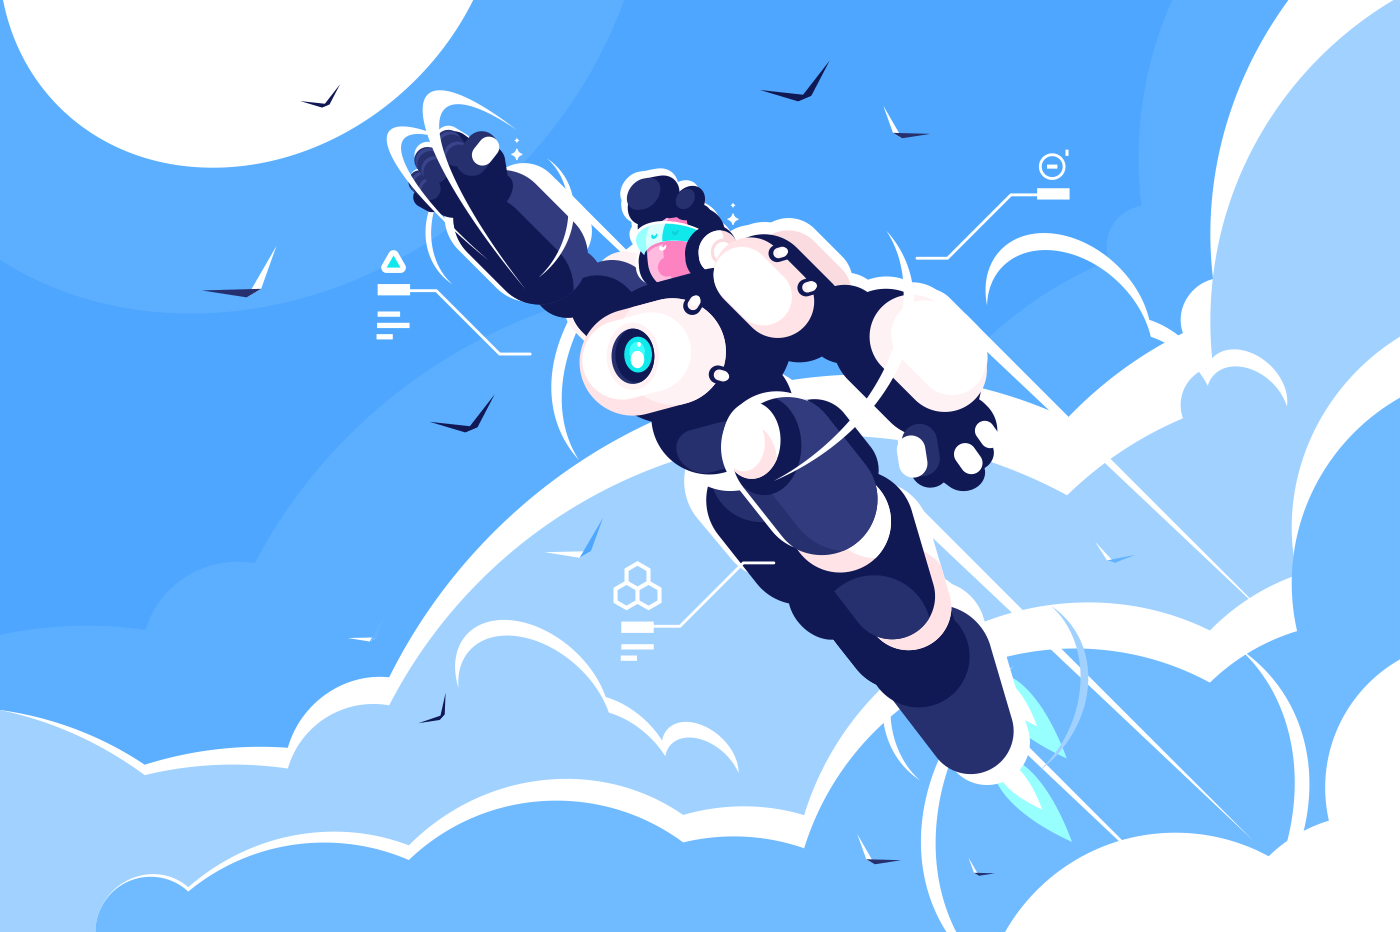 Man astronaut super hero spacesuit flying in sky. Robot costume powerful cartoon character concept. Flat. Vector illustration.